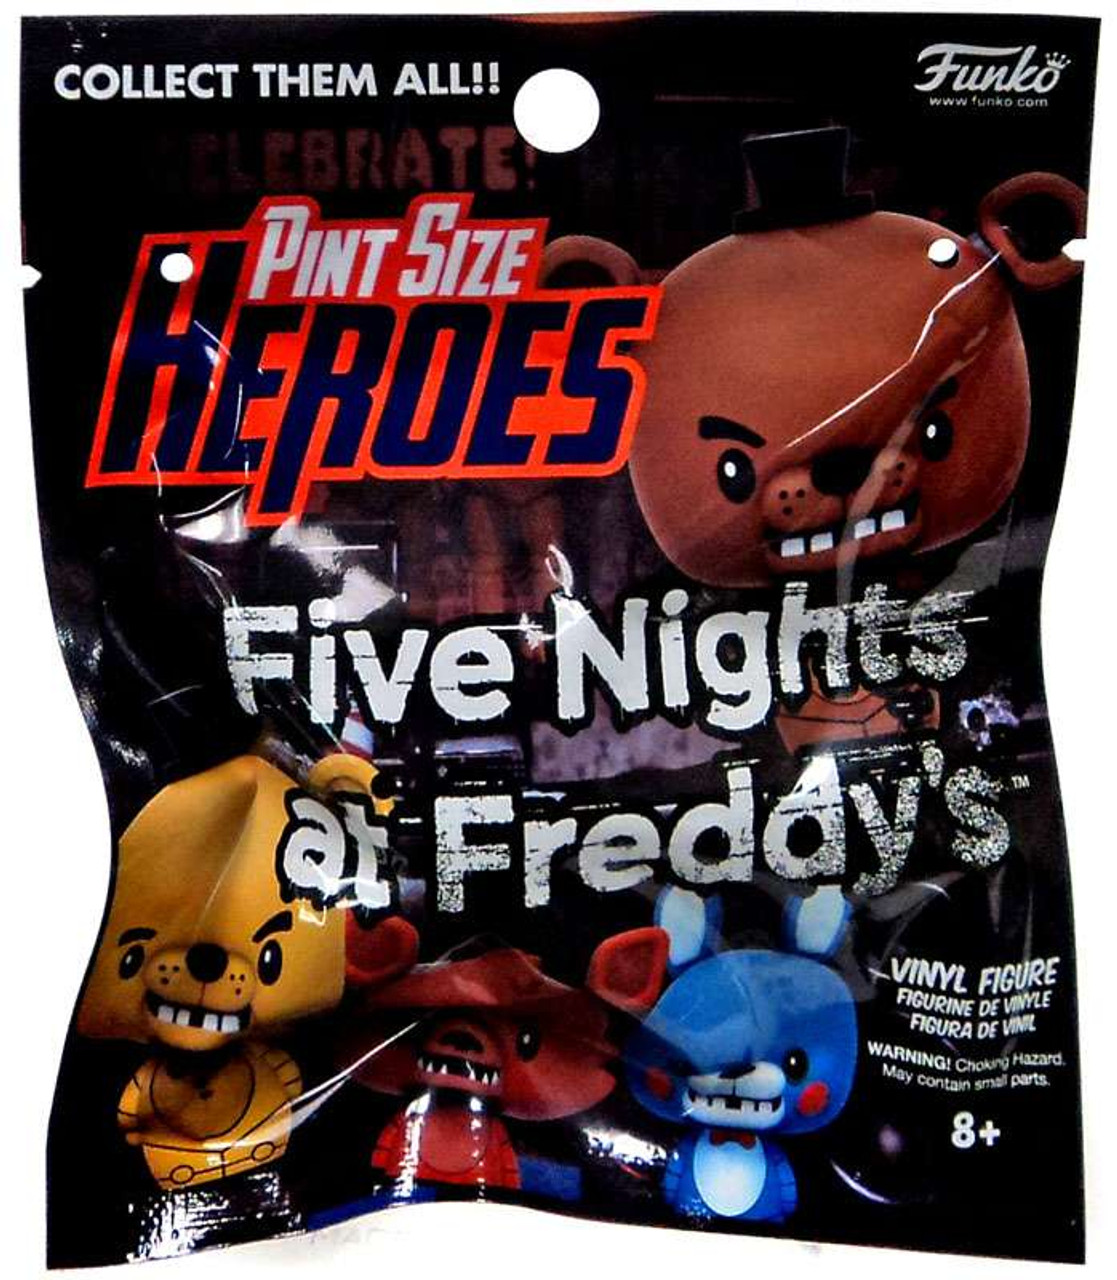 NEW PINT SIZED HEROES FIVE NIGHTS AT FREDDYS SINGLE FIGURE BLIND BAG